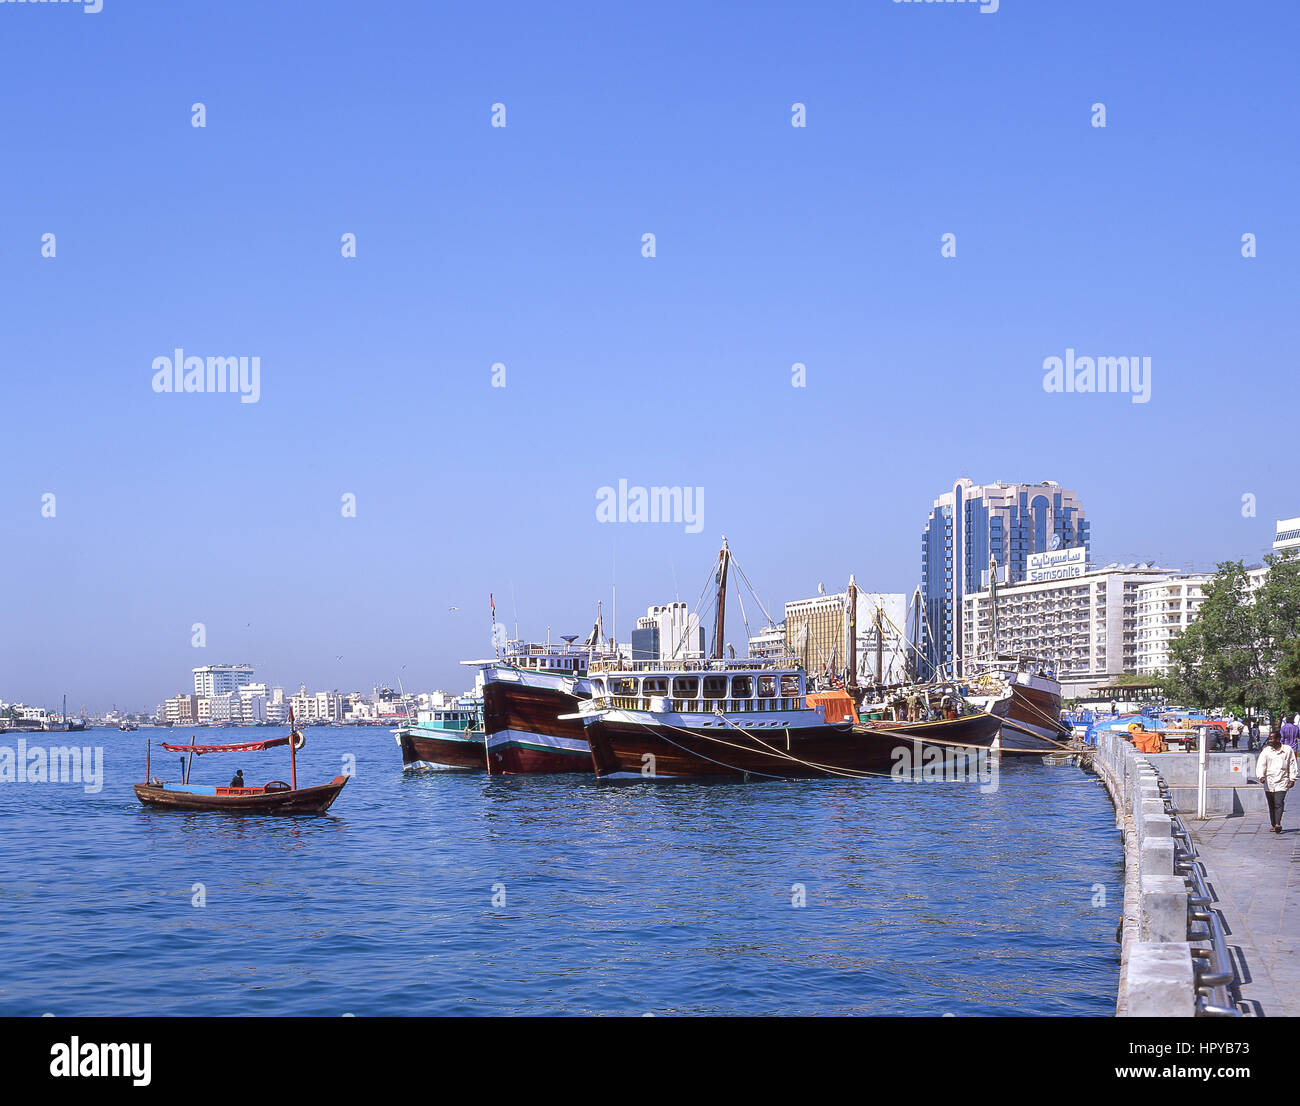 Dhow boats moored on quayside, Dubai Creek, Deira, Dubai, United Arab Emirates - Stock Image